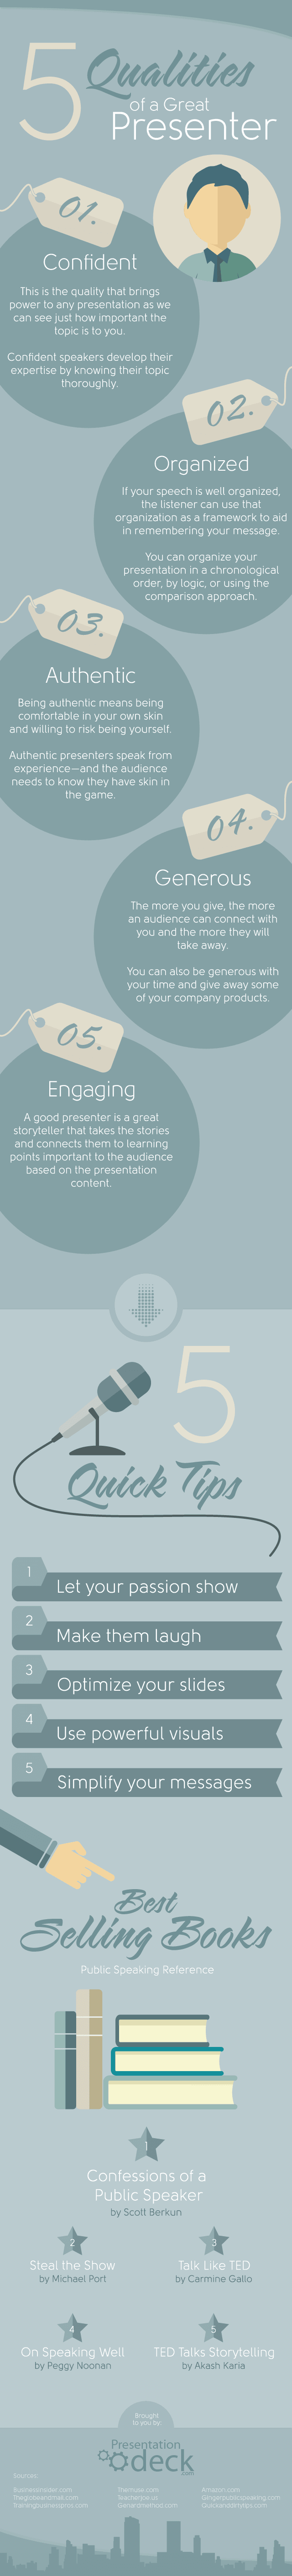 Qualities Of A Great Presenter Infographic  Resource